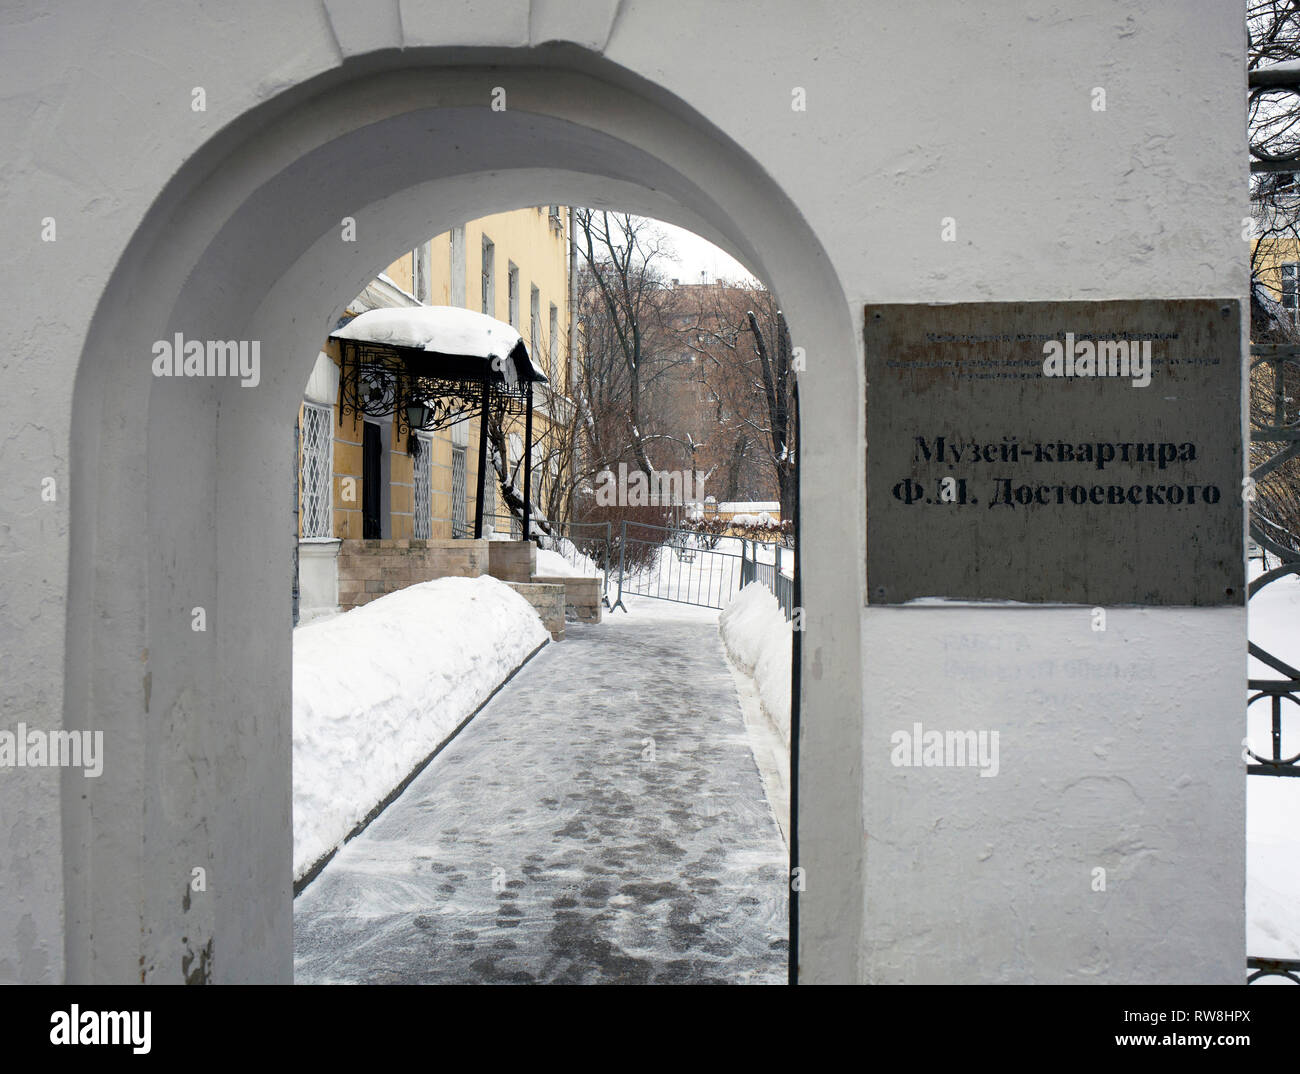 Entrance of the museum Dostoevsky in Moscow. The house is part of the hospital in which the writer's father was working as doctor - Stock Image